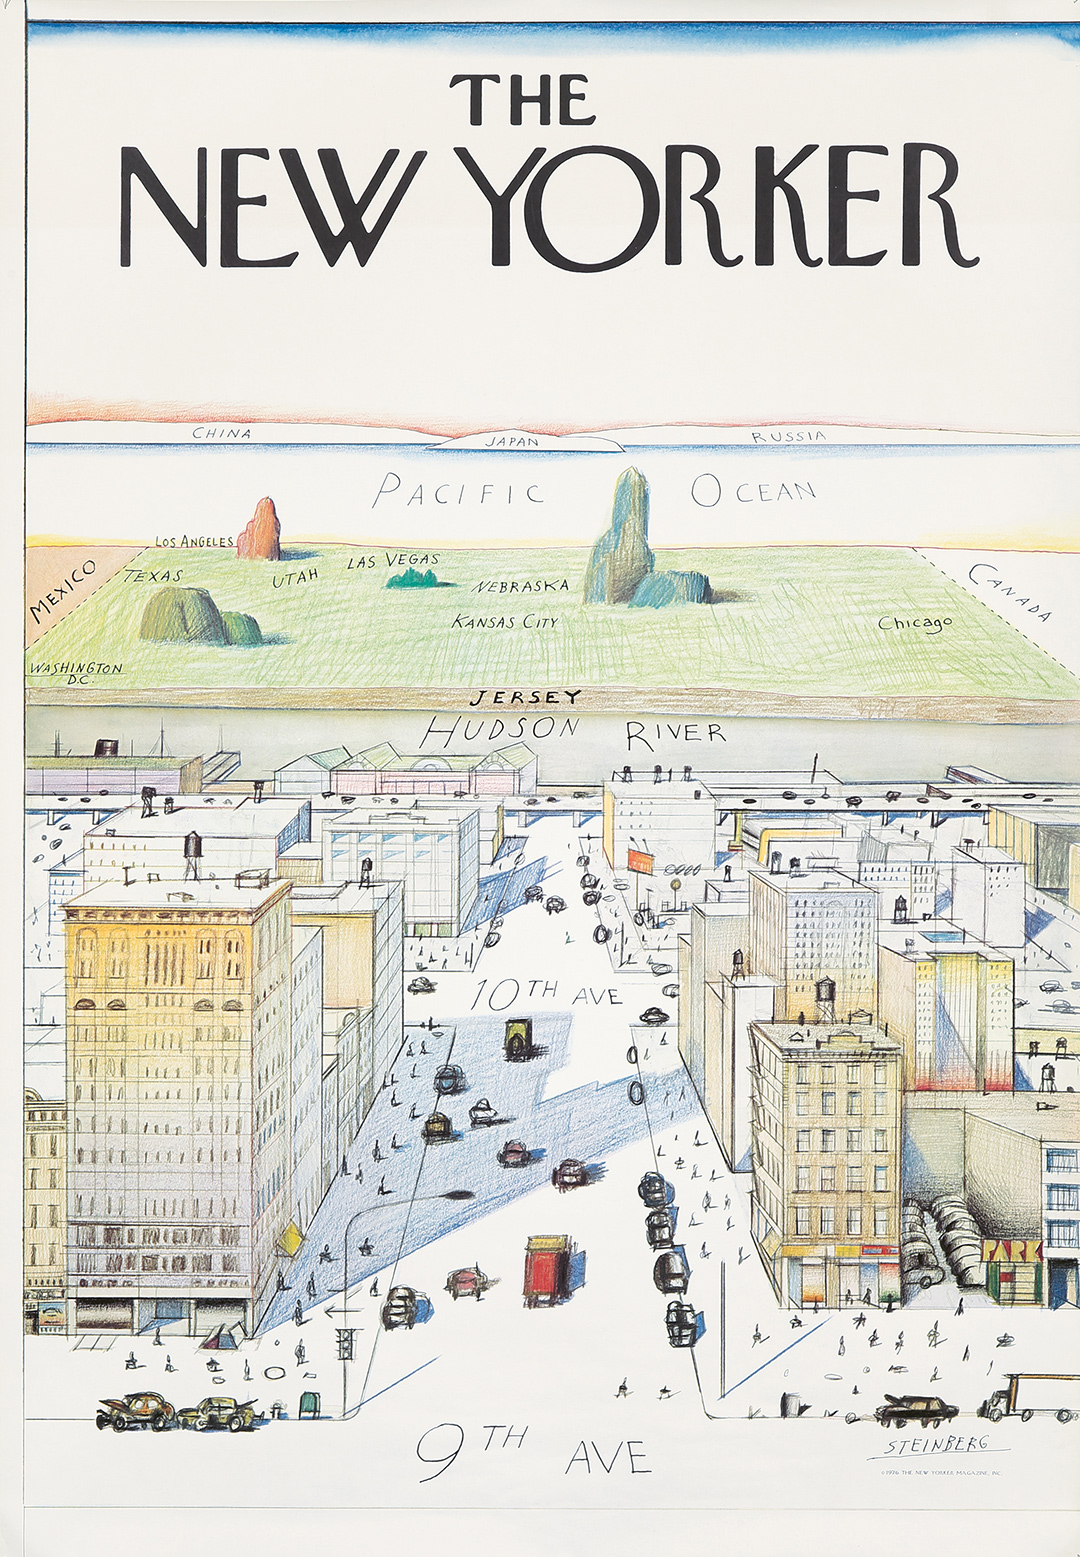 365. The New Yorker / View Of The World From 9th Avenue. 1976. ($2,160)